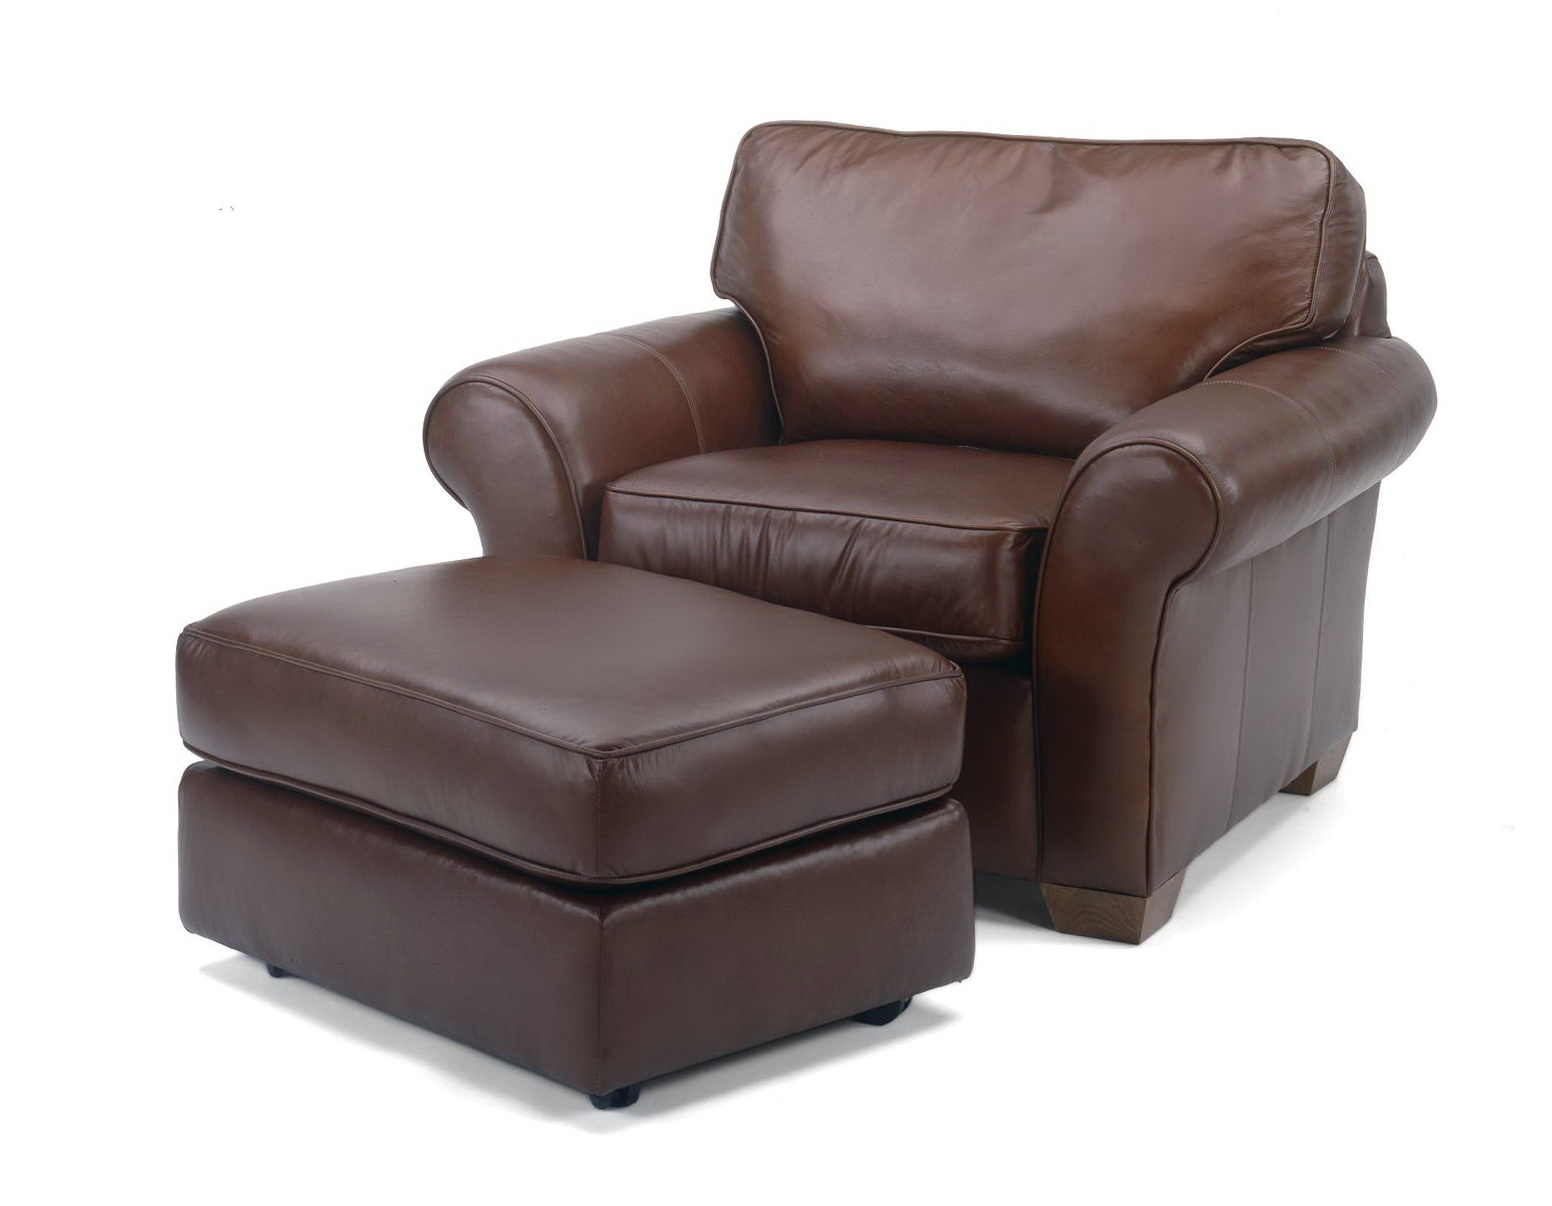 Leather Chair And Ottoman Costco Home Design Ideas